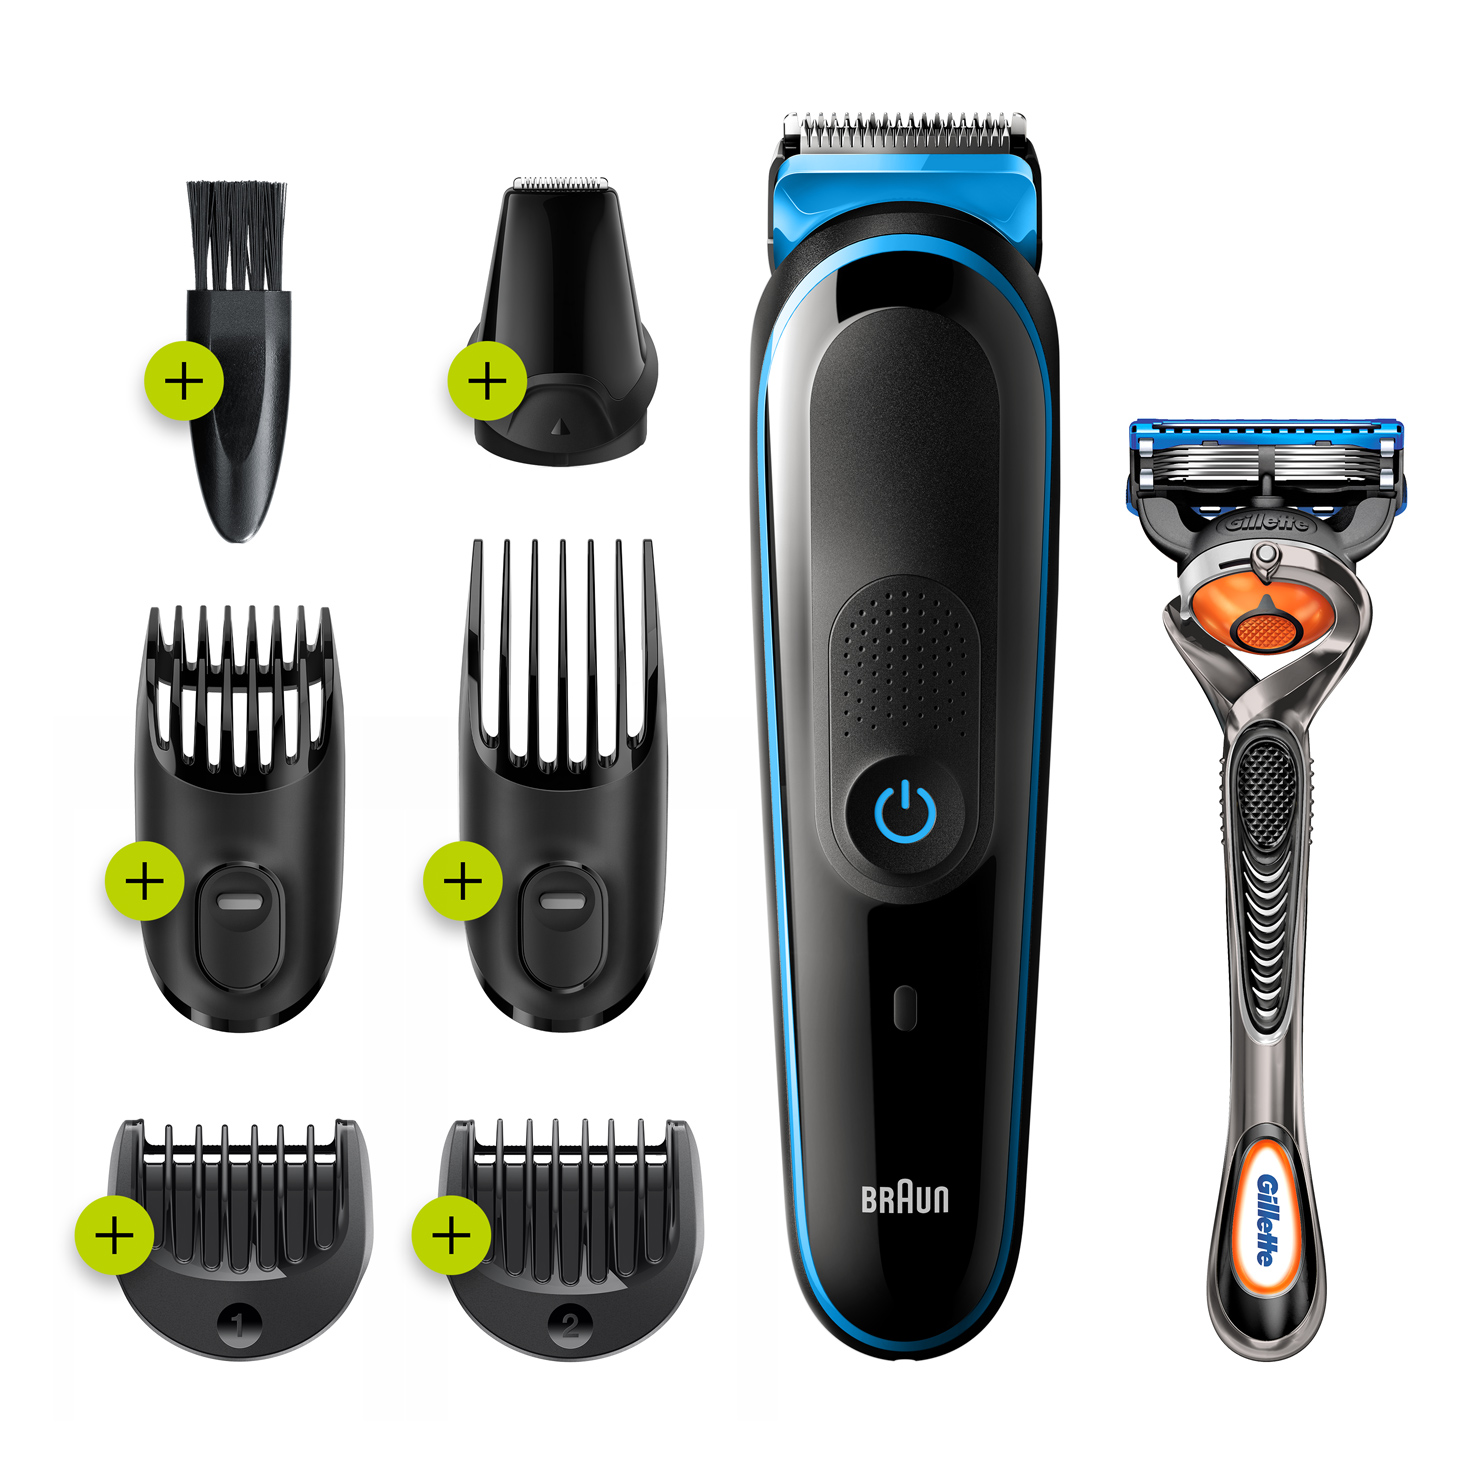 Braun All in one trimmer 5 MGK5245